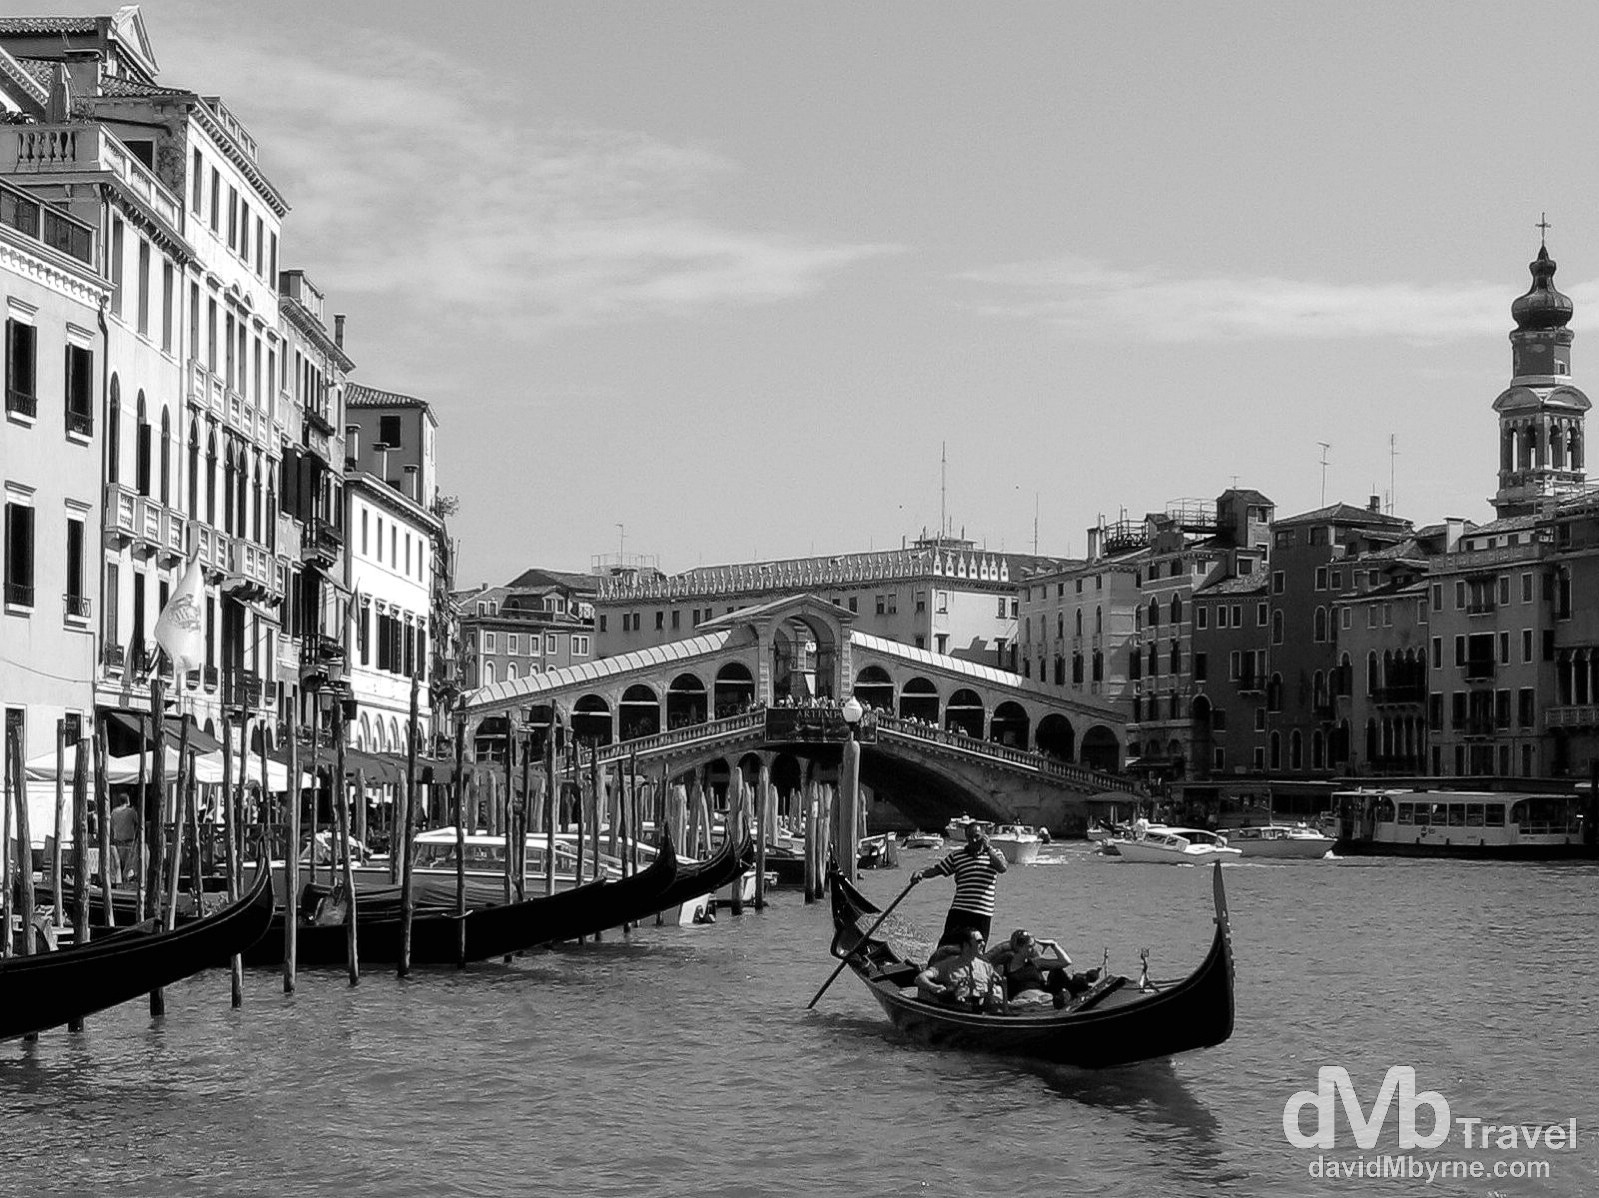 On the Grand Canal in Venice, Veneto, Italy. August 27th, 2007.